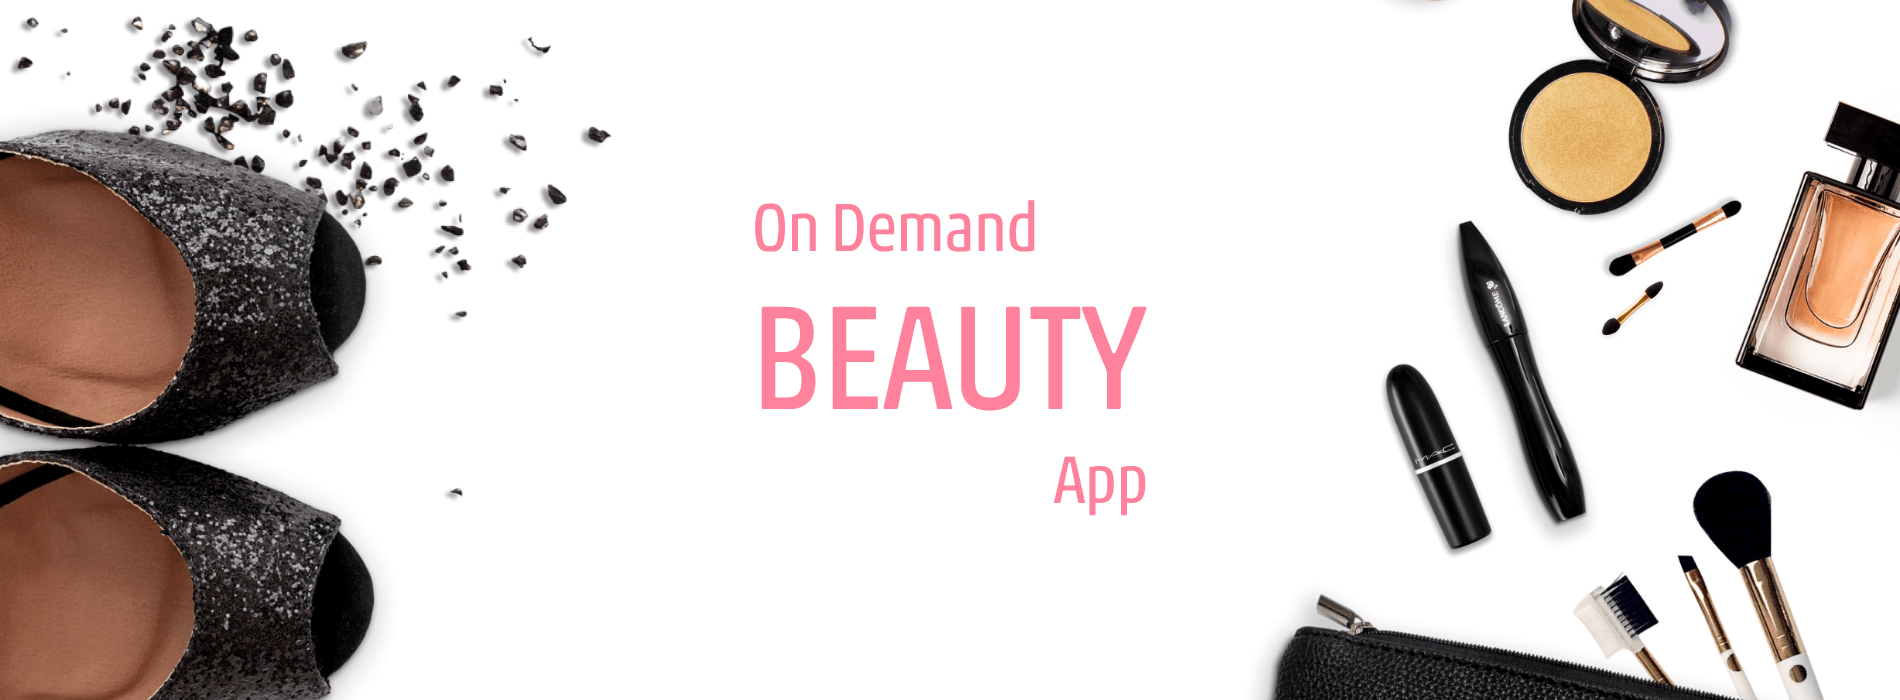 Cost and Key features to develop an on demand Beauty App